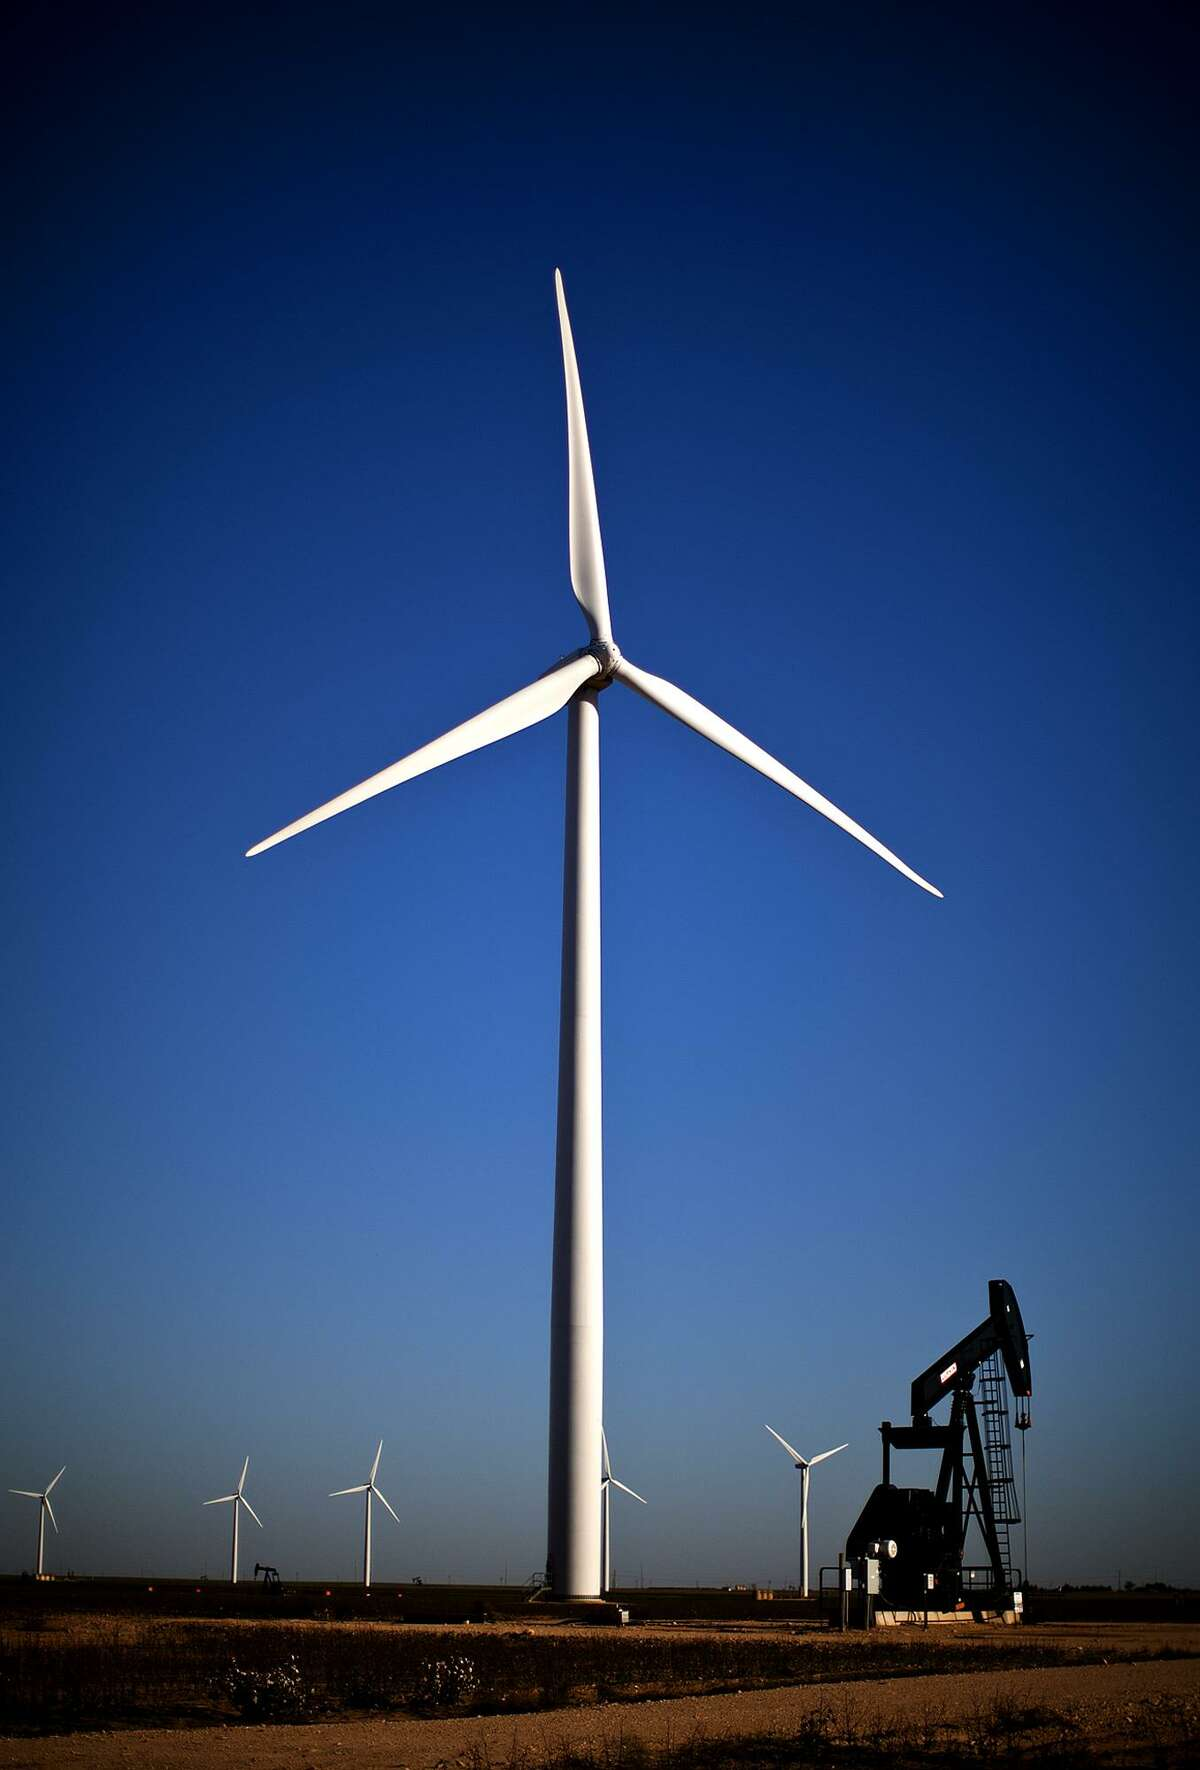 Wind turbines and oil pumpjack in action.